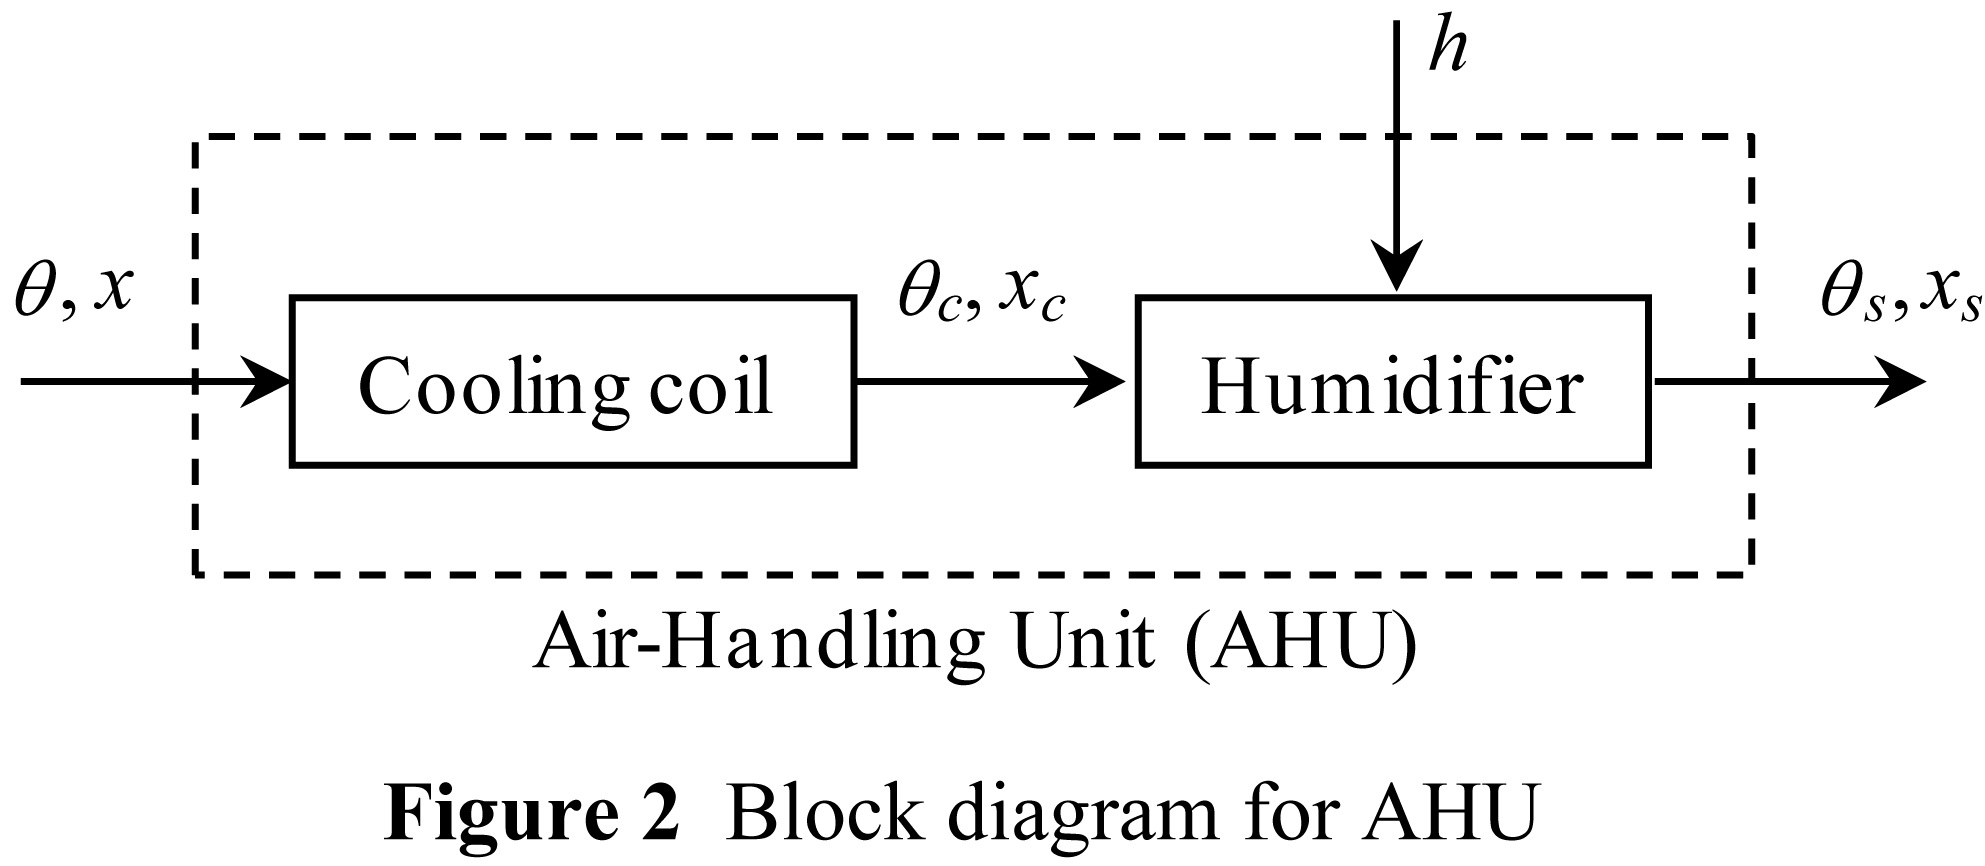 hight resolution of figure 2 block diagram for ahu